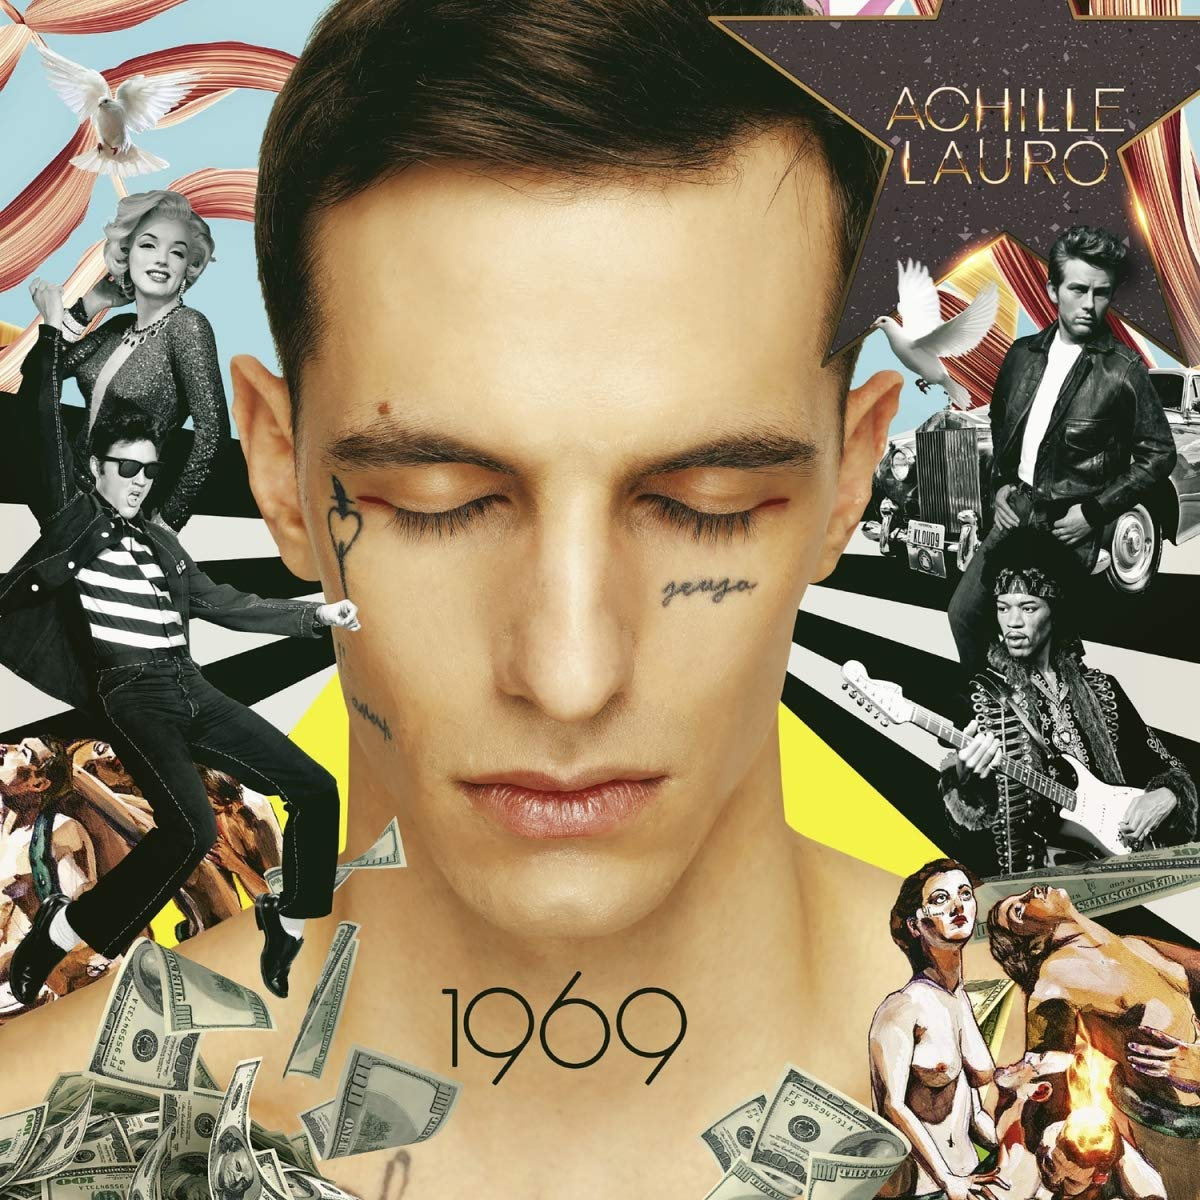 Achille Lauro 1969 album 2019 cover